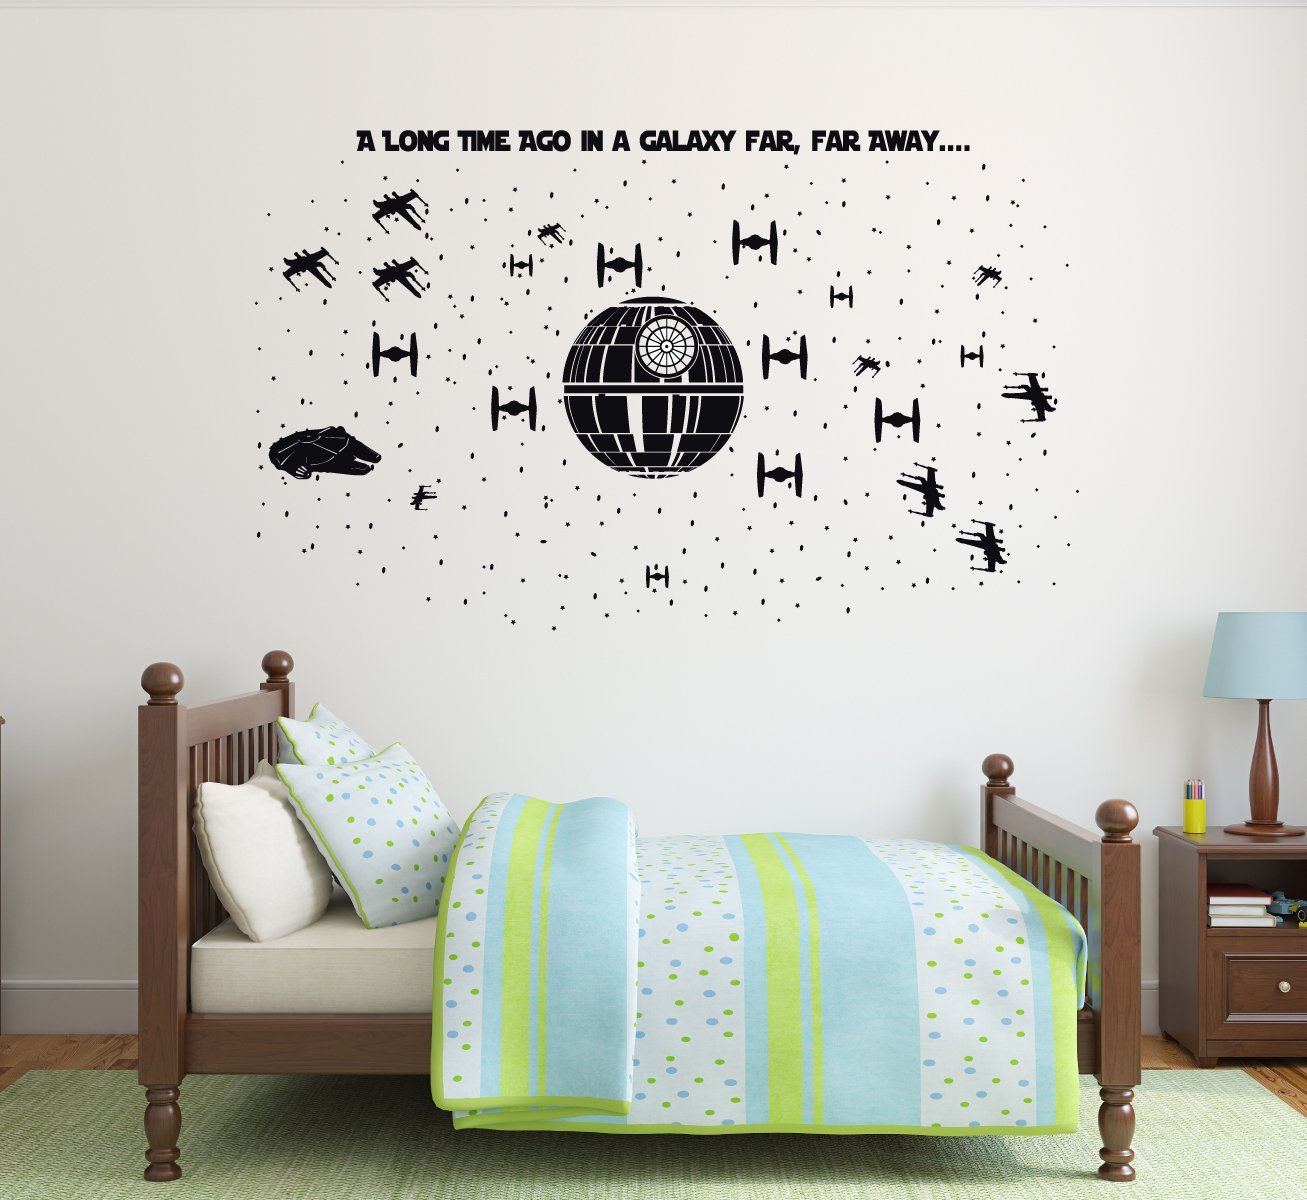 Amazon Com Best Design Amazing Kylo Ren Star Wars Wall Decal Personalized Name Decal Sticker Boys Decor Made In The Usa Large Size Kitchen Dining